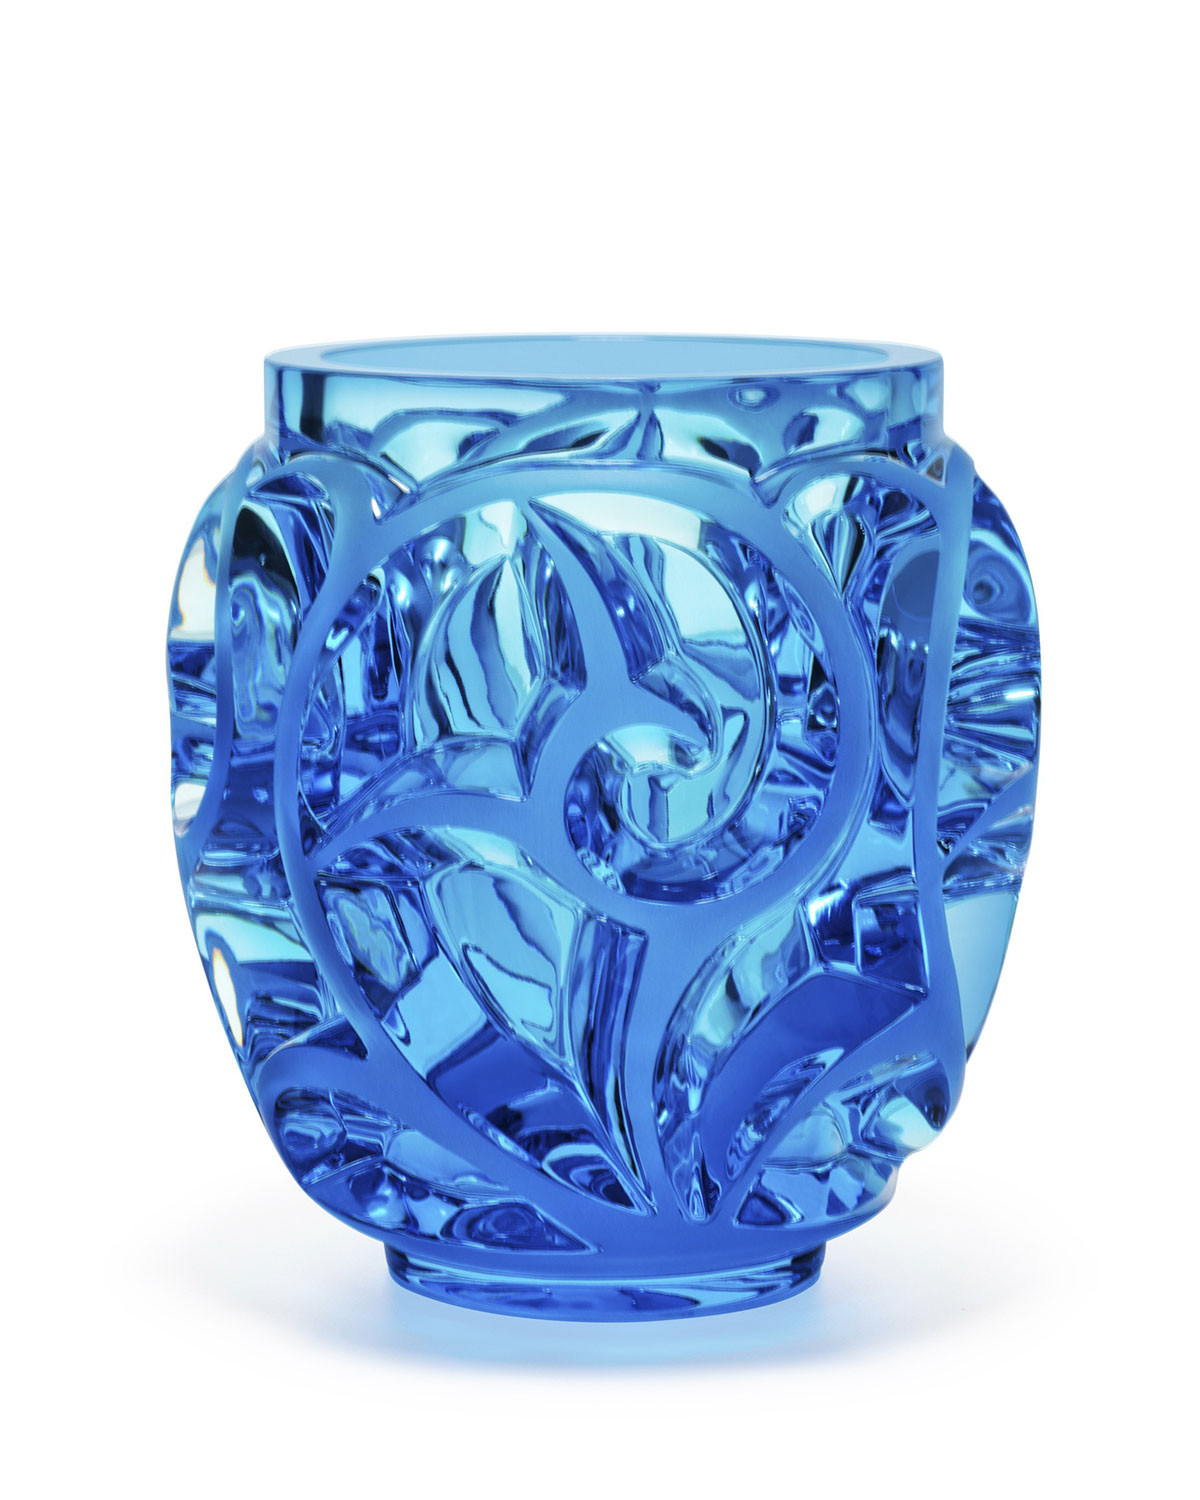 kosta boda mirage vase green blue of blue crystal vase neiman marcus inside quick look lalique ac2b7 tourbillons limited edition blue vase